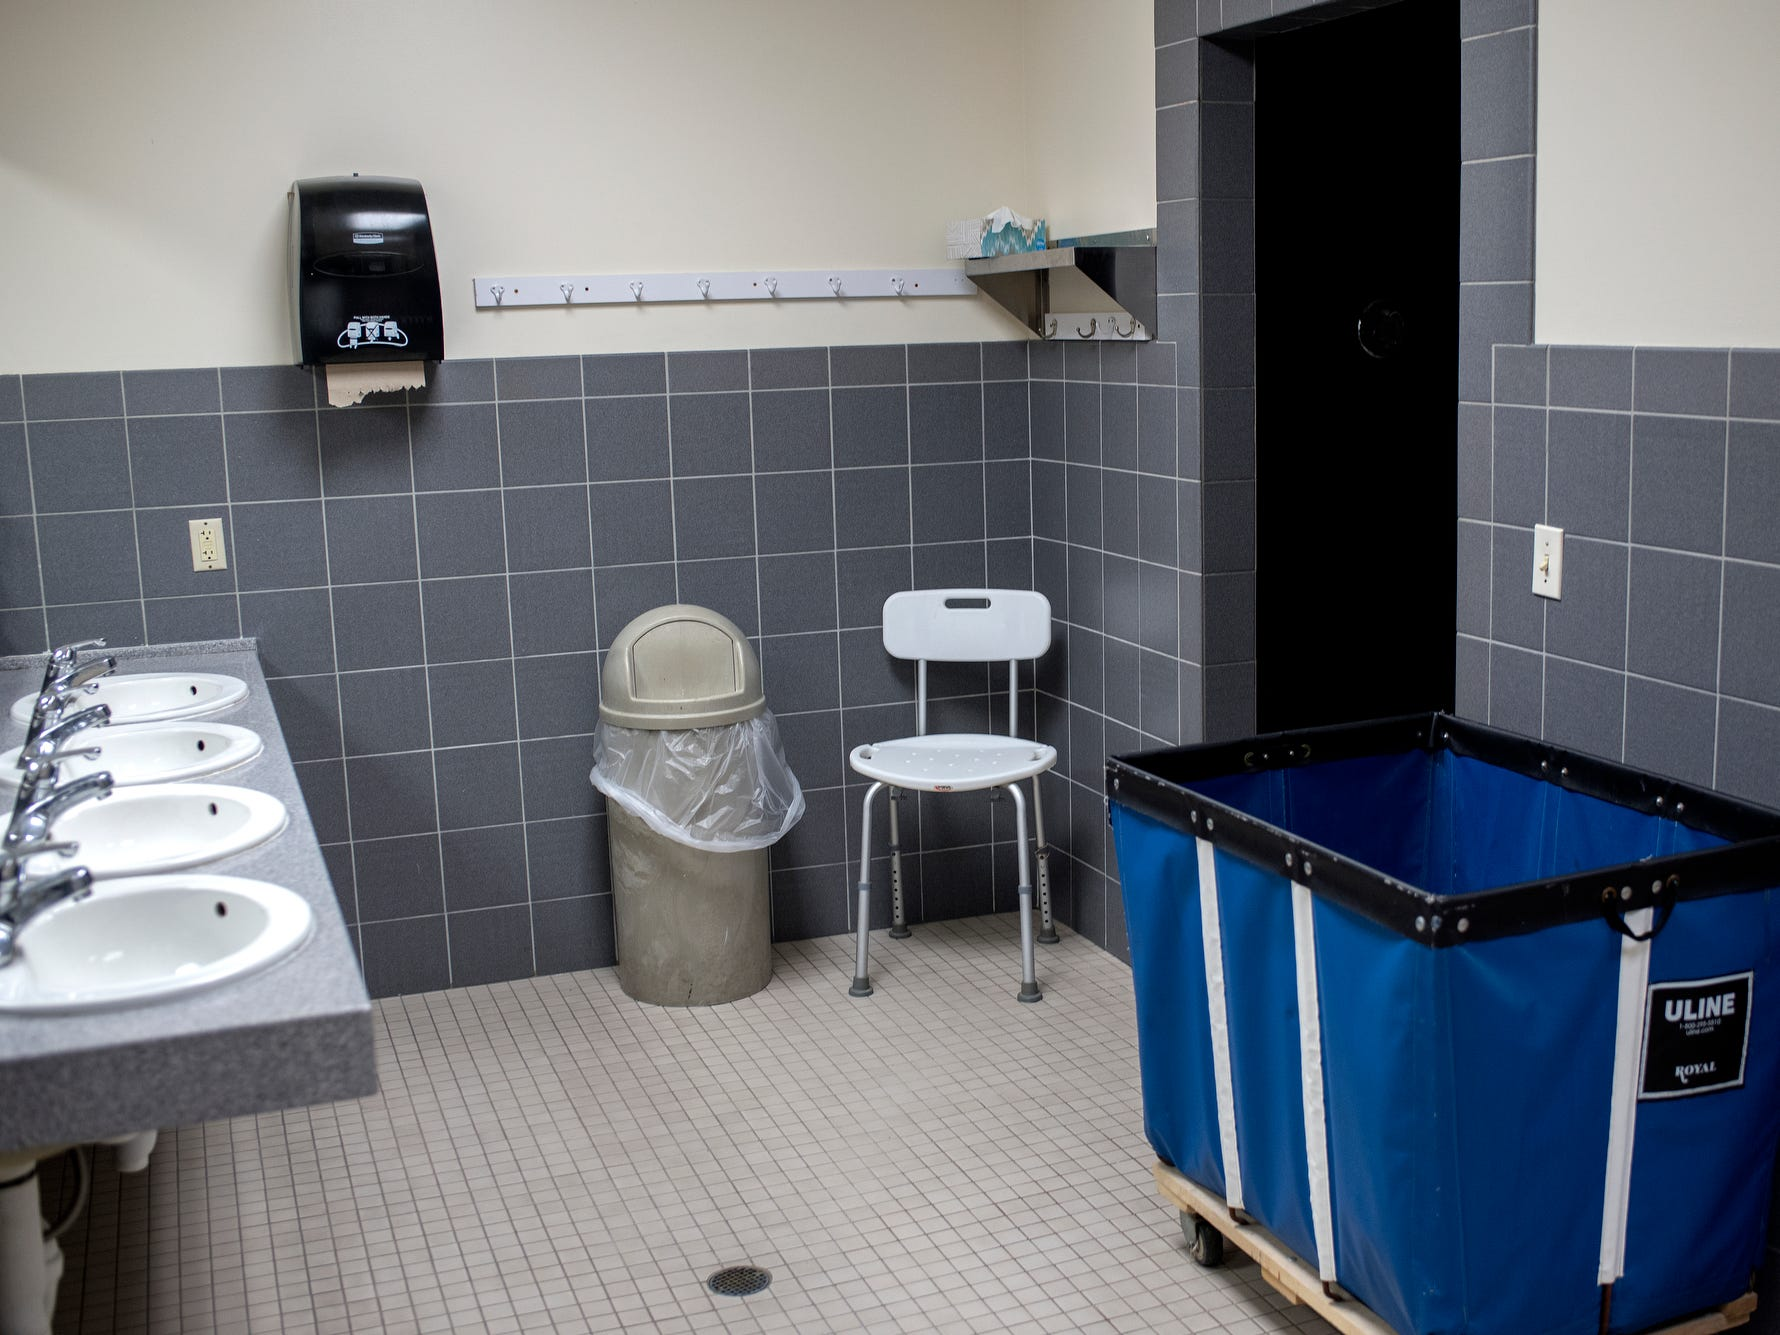 A view of the bathroom which also has a shower at the City Rescue Mission on Tuesday, Sept. 4, 2018, in downtown Lansing.